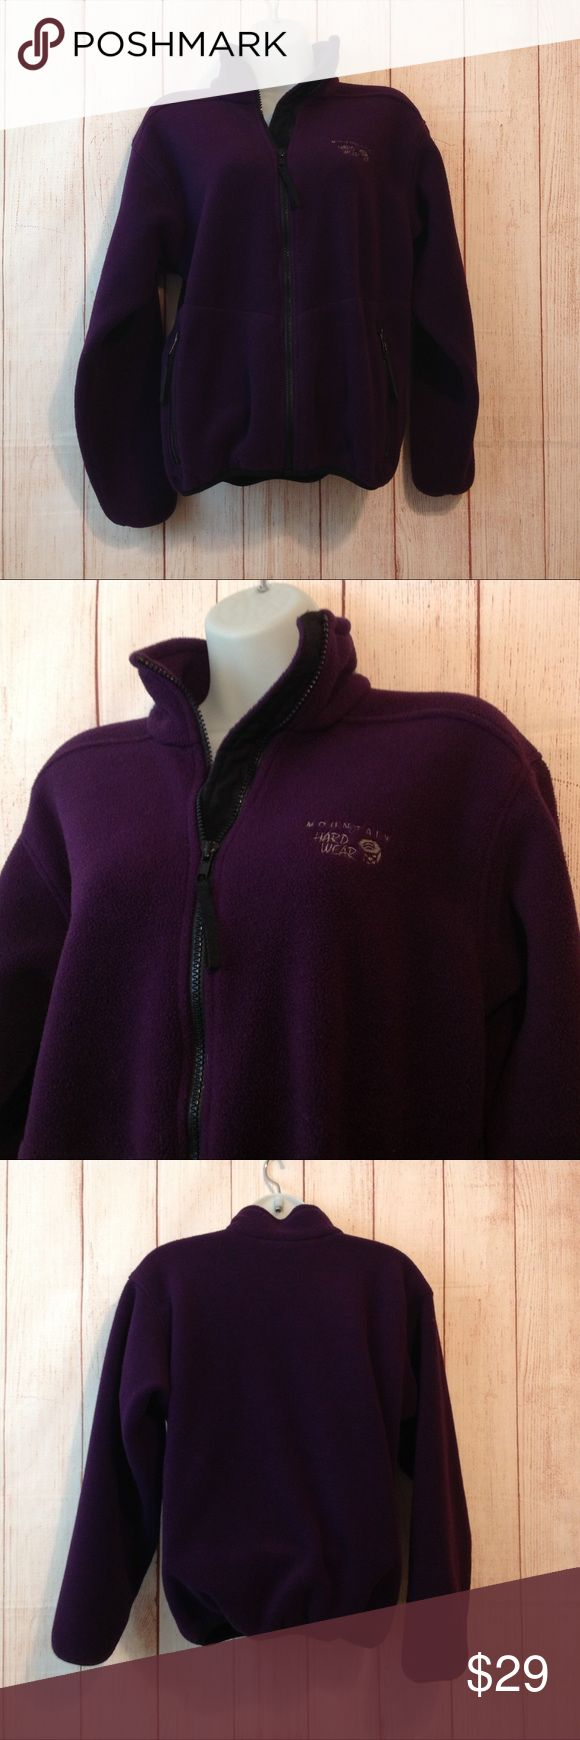 "Mountain Hardwear Fleece Jacket Maker: Mountain Hardwear ♥ Material: Polyester ♥ Color: Purple ♥ Measured Size: Pit to pit- 22"" Pit to cuff- 19"" Shoulder to waist- 23""  ♥ Tag Size:  XS ♥ PLEASE CHECK YOUR ACTUAL MEASUREMENTS TO MAKE SURE IT IS THE RIGHT SIZE! THANKS!  ♥ Condition: Deep Purple ♥ Item #: (office use only) A Mountain Hardwear Jackets & Coats"